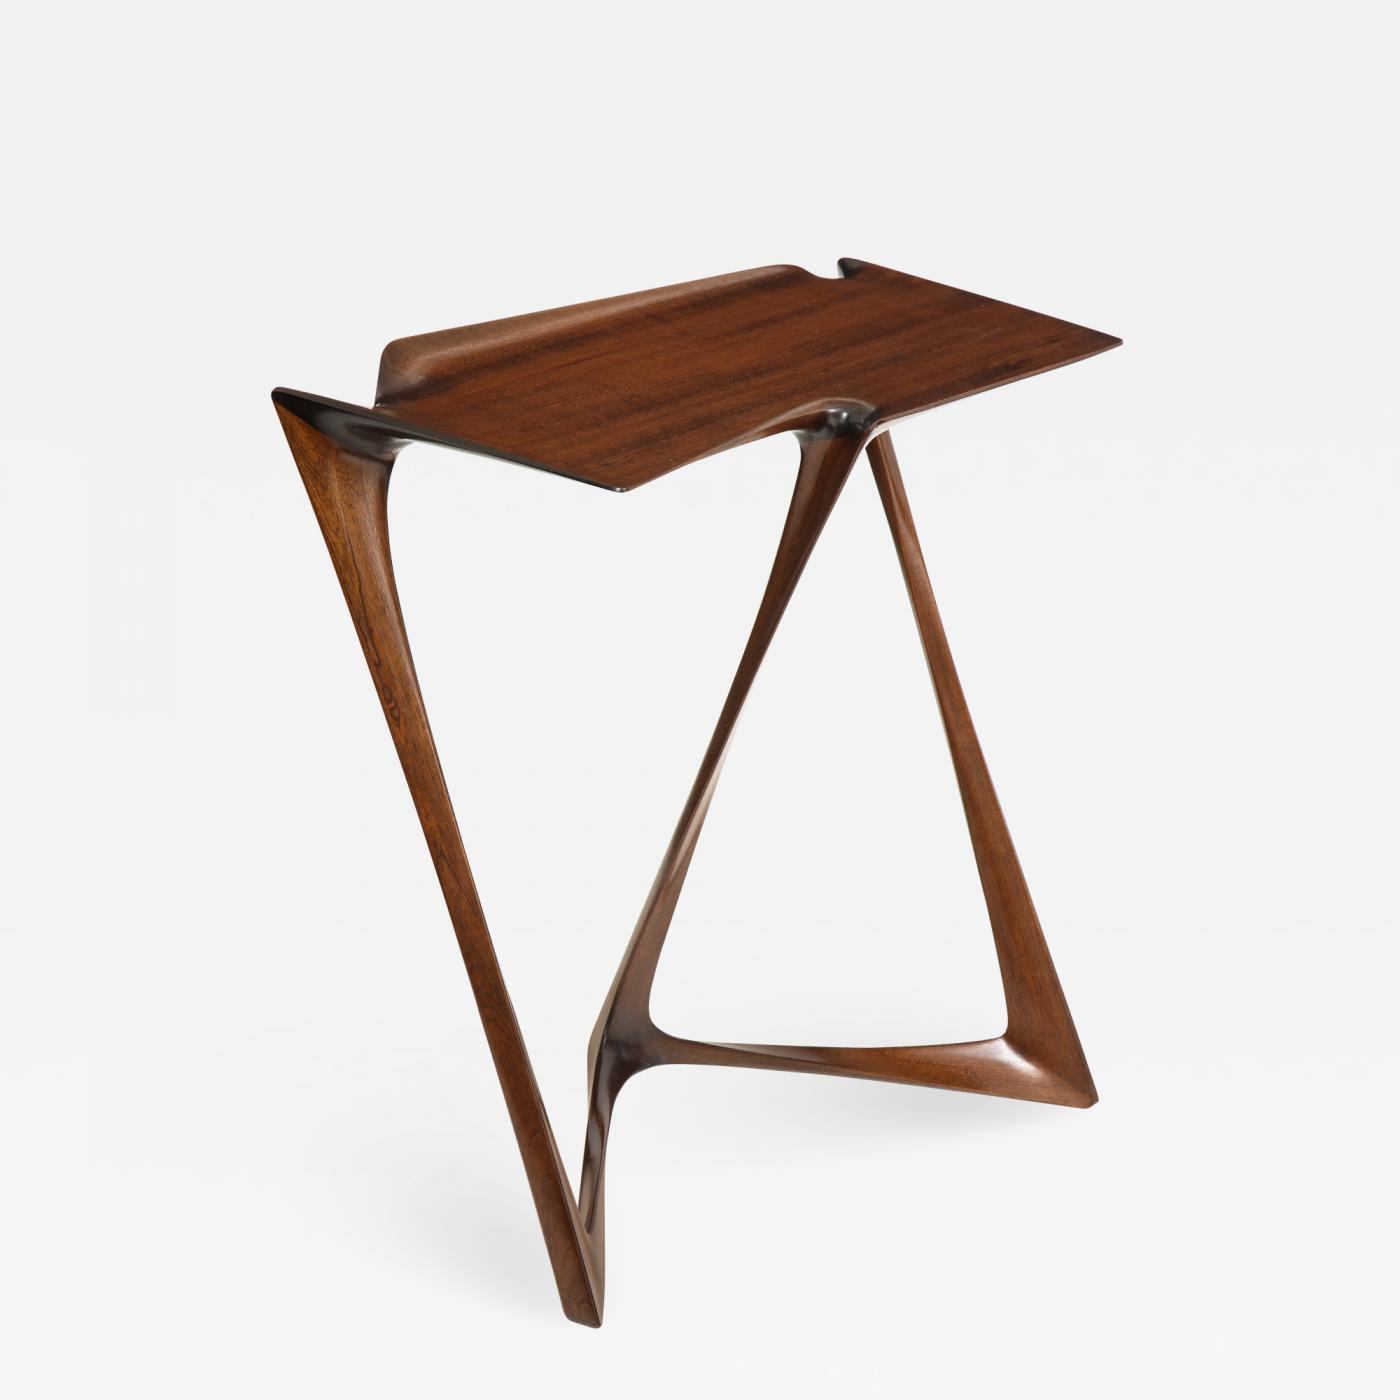 Uniquely designed side table. Designed by Newman-Krasnogorov for Olicore Studio